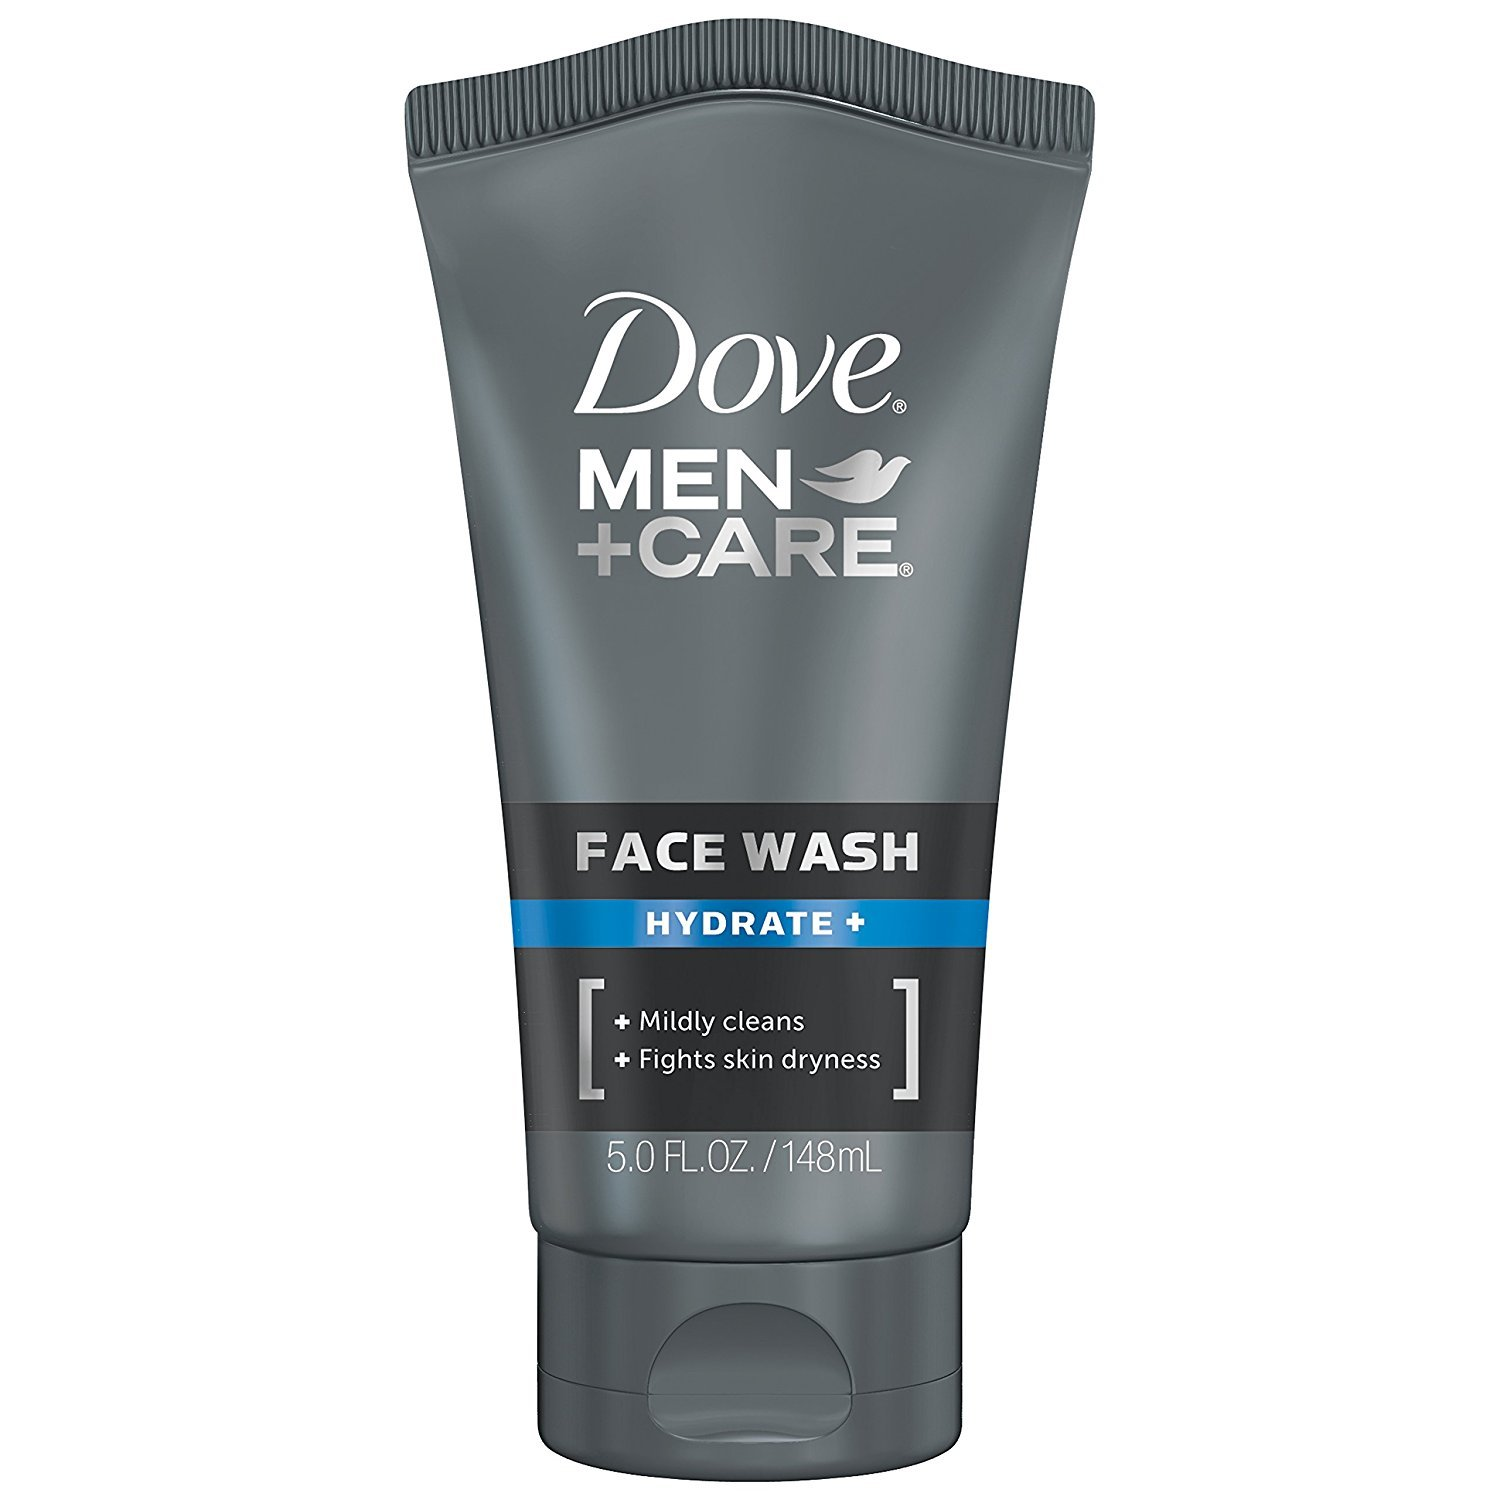 Dove Men+CareFace Wash Hydrate Plus 5 oz